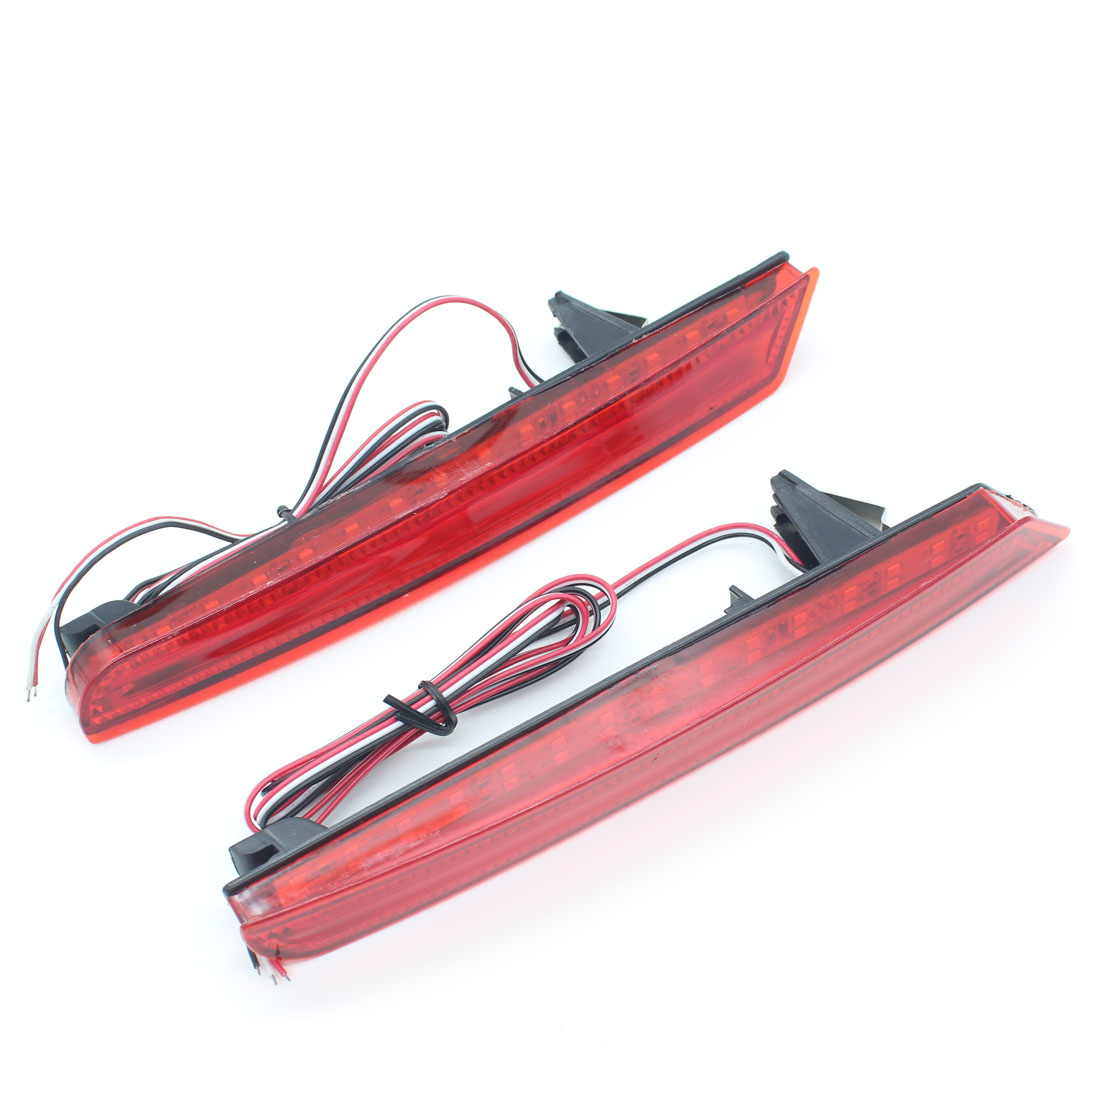 Dongzhen Red Rear Bumper Reflectors Light Brake Parking Warning Night Runing Tail Lamps LED Fit For Honda Odyssey 2009-2014 2pcs red rear bumper reflectors light brake parking warning night runing tail lamps led for honda odyssey 2007